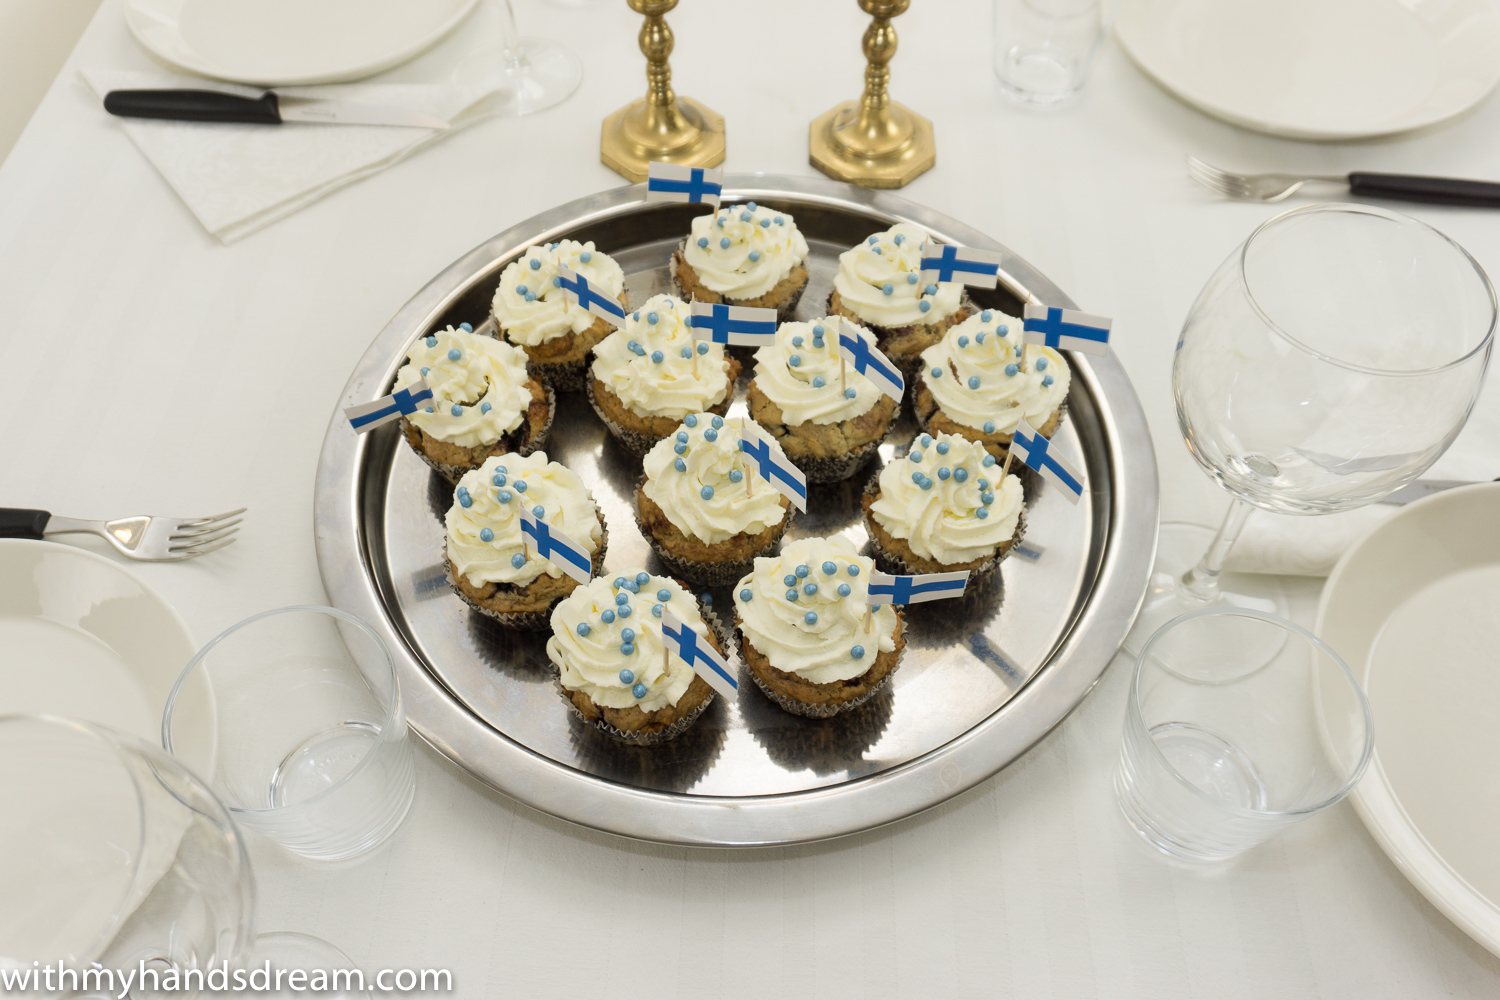 suomi-100-v-finland-100-years-make-blue-and-white-muffins-to-celebrate